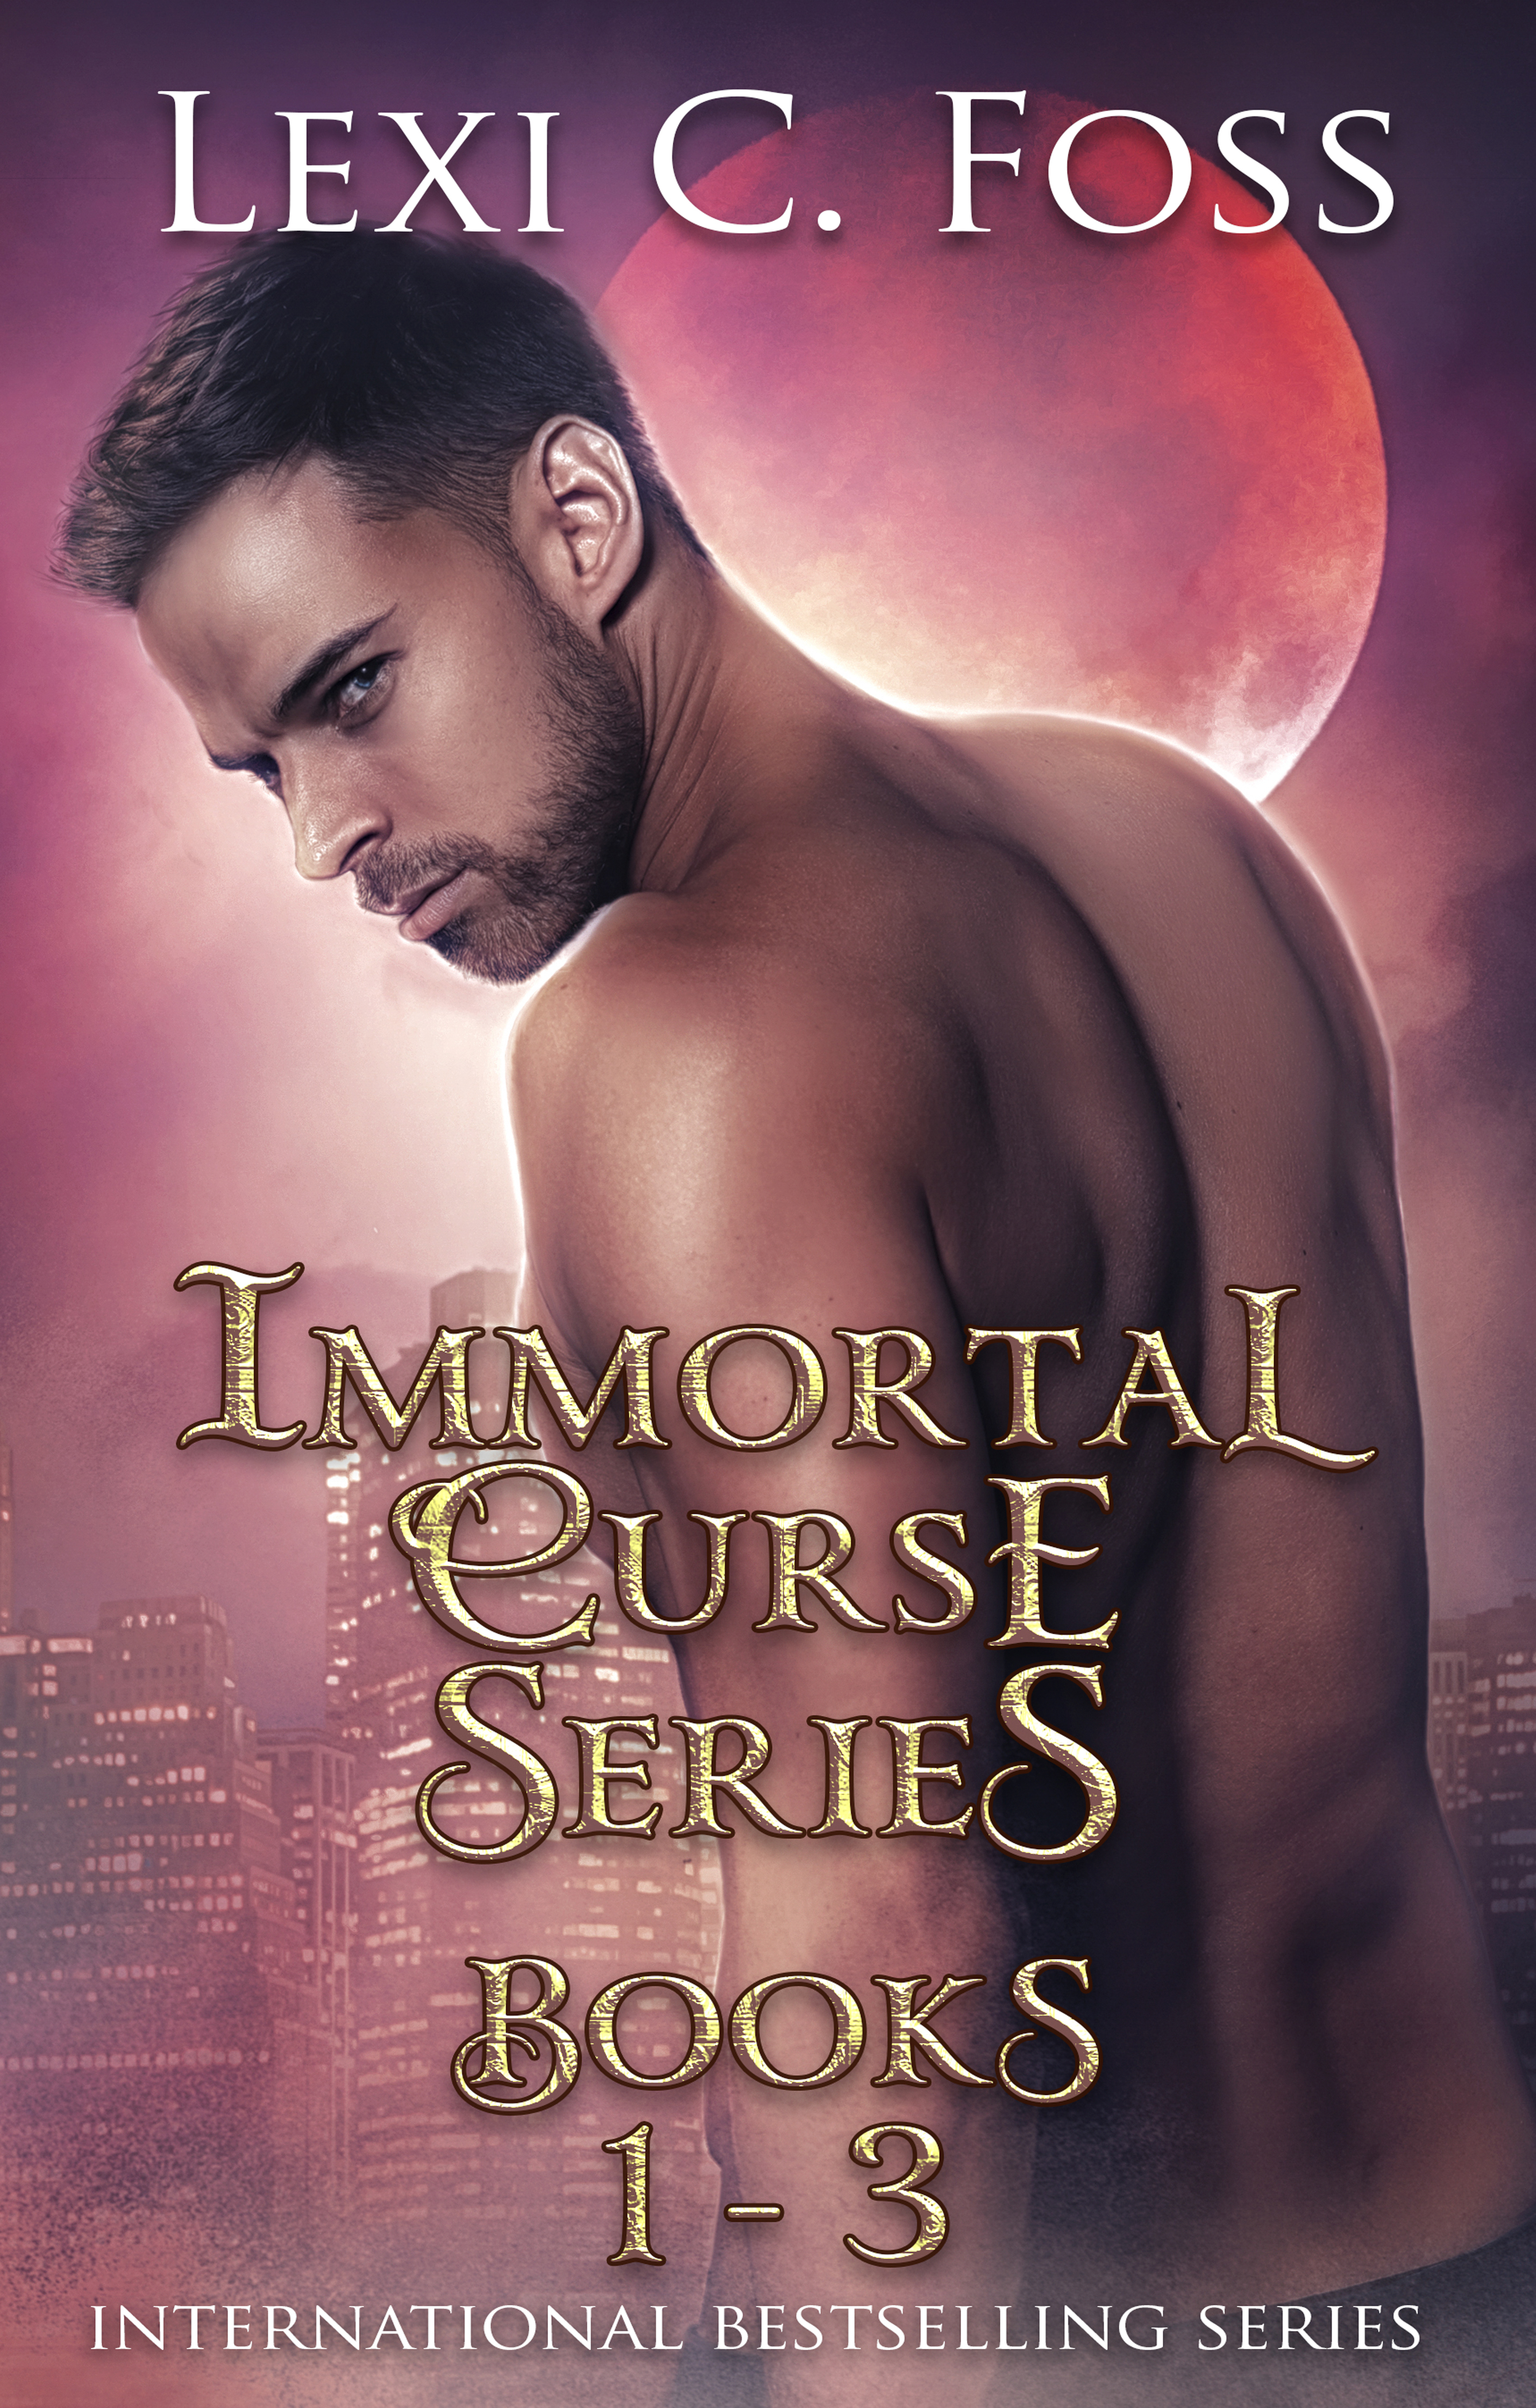 IMMORTAL CURSE SERIES